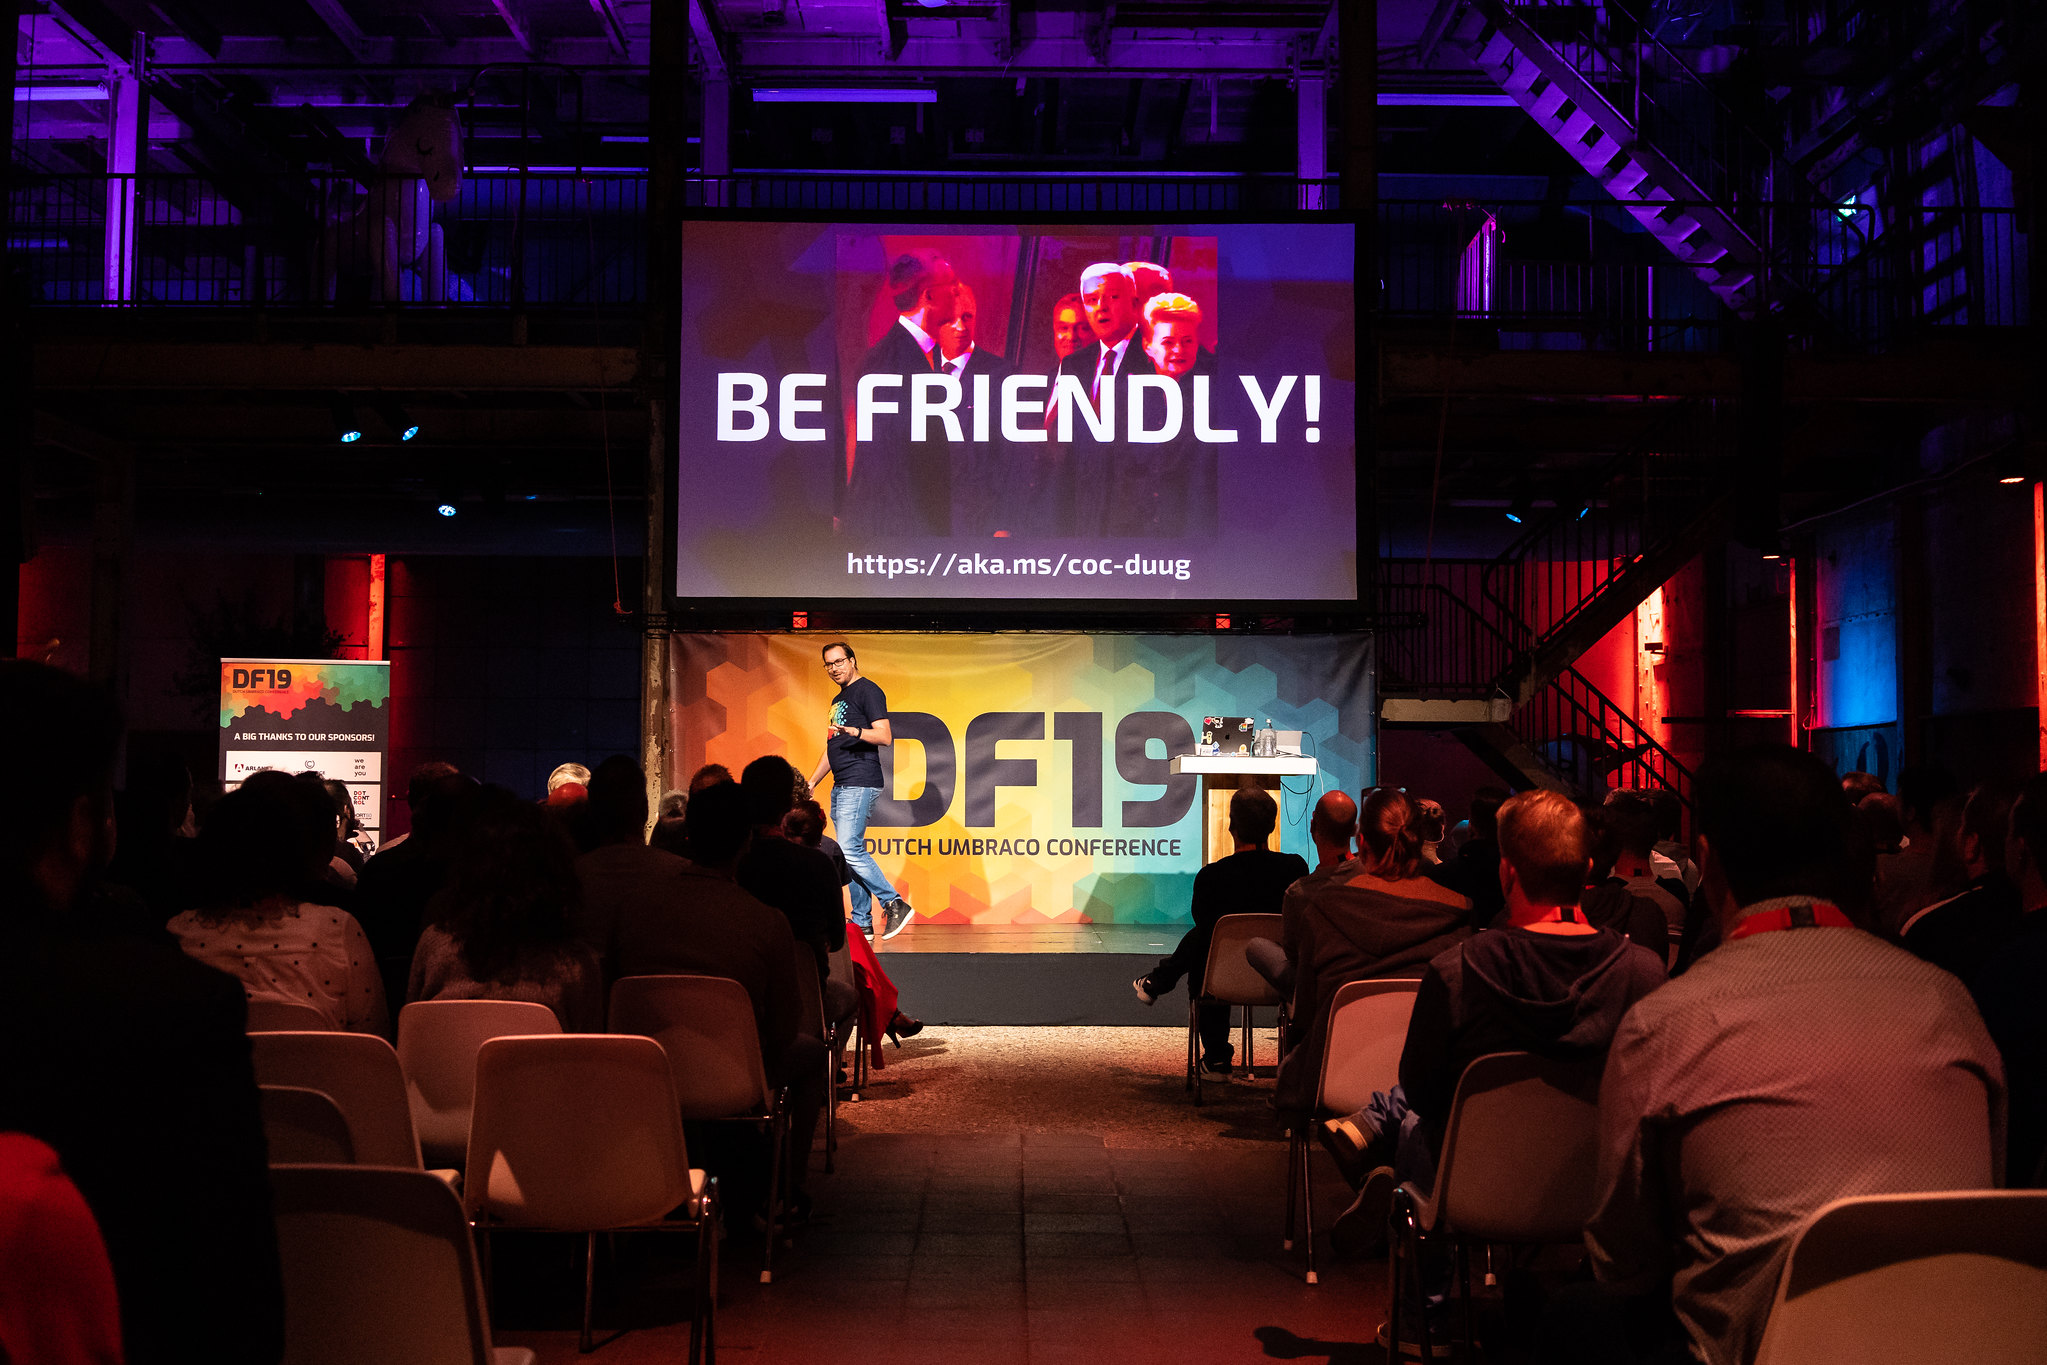 10 tips on how to create a friendly community MeetUp